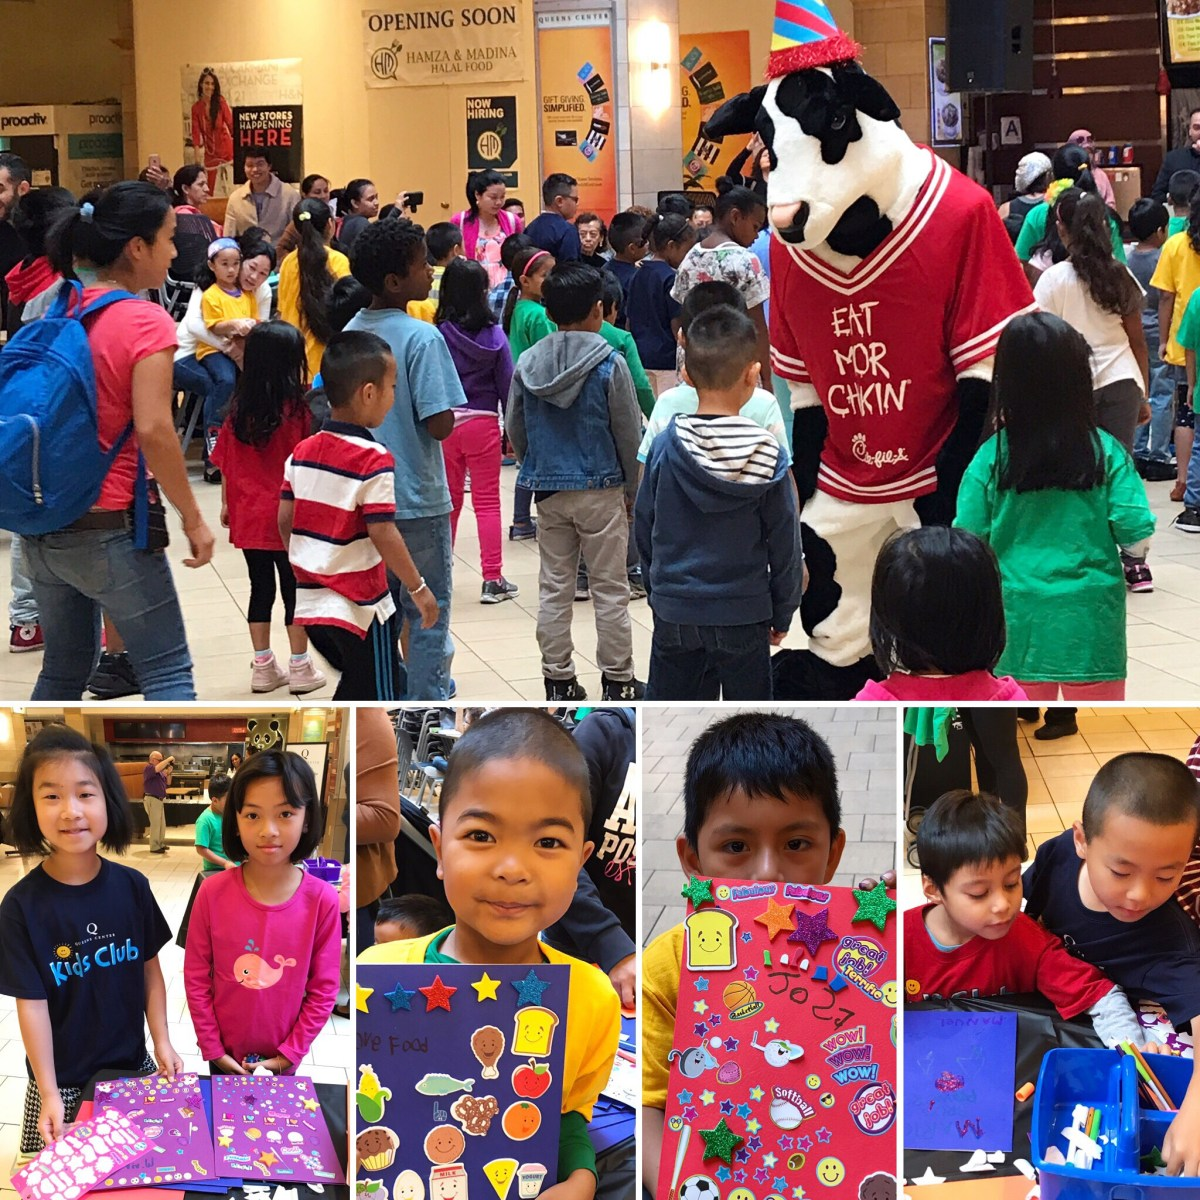 Queens Center Mall - Sept 2017 - Back to School Kids Club